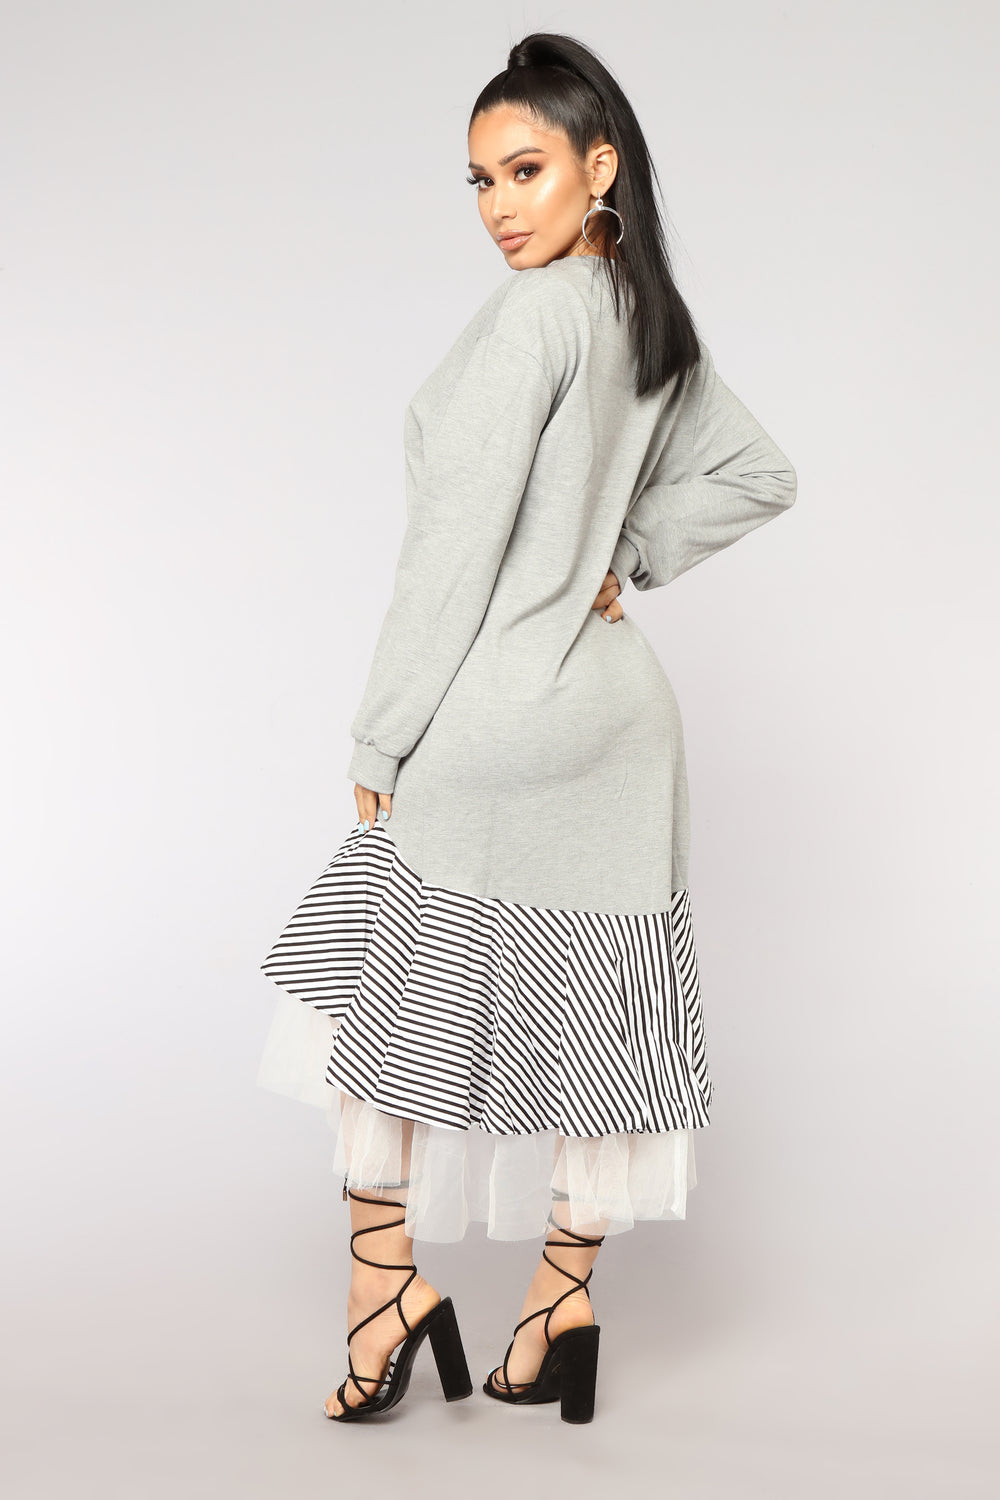 Ruffle Your Feathers Midi Dress - Heather Grey